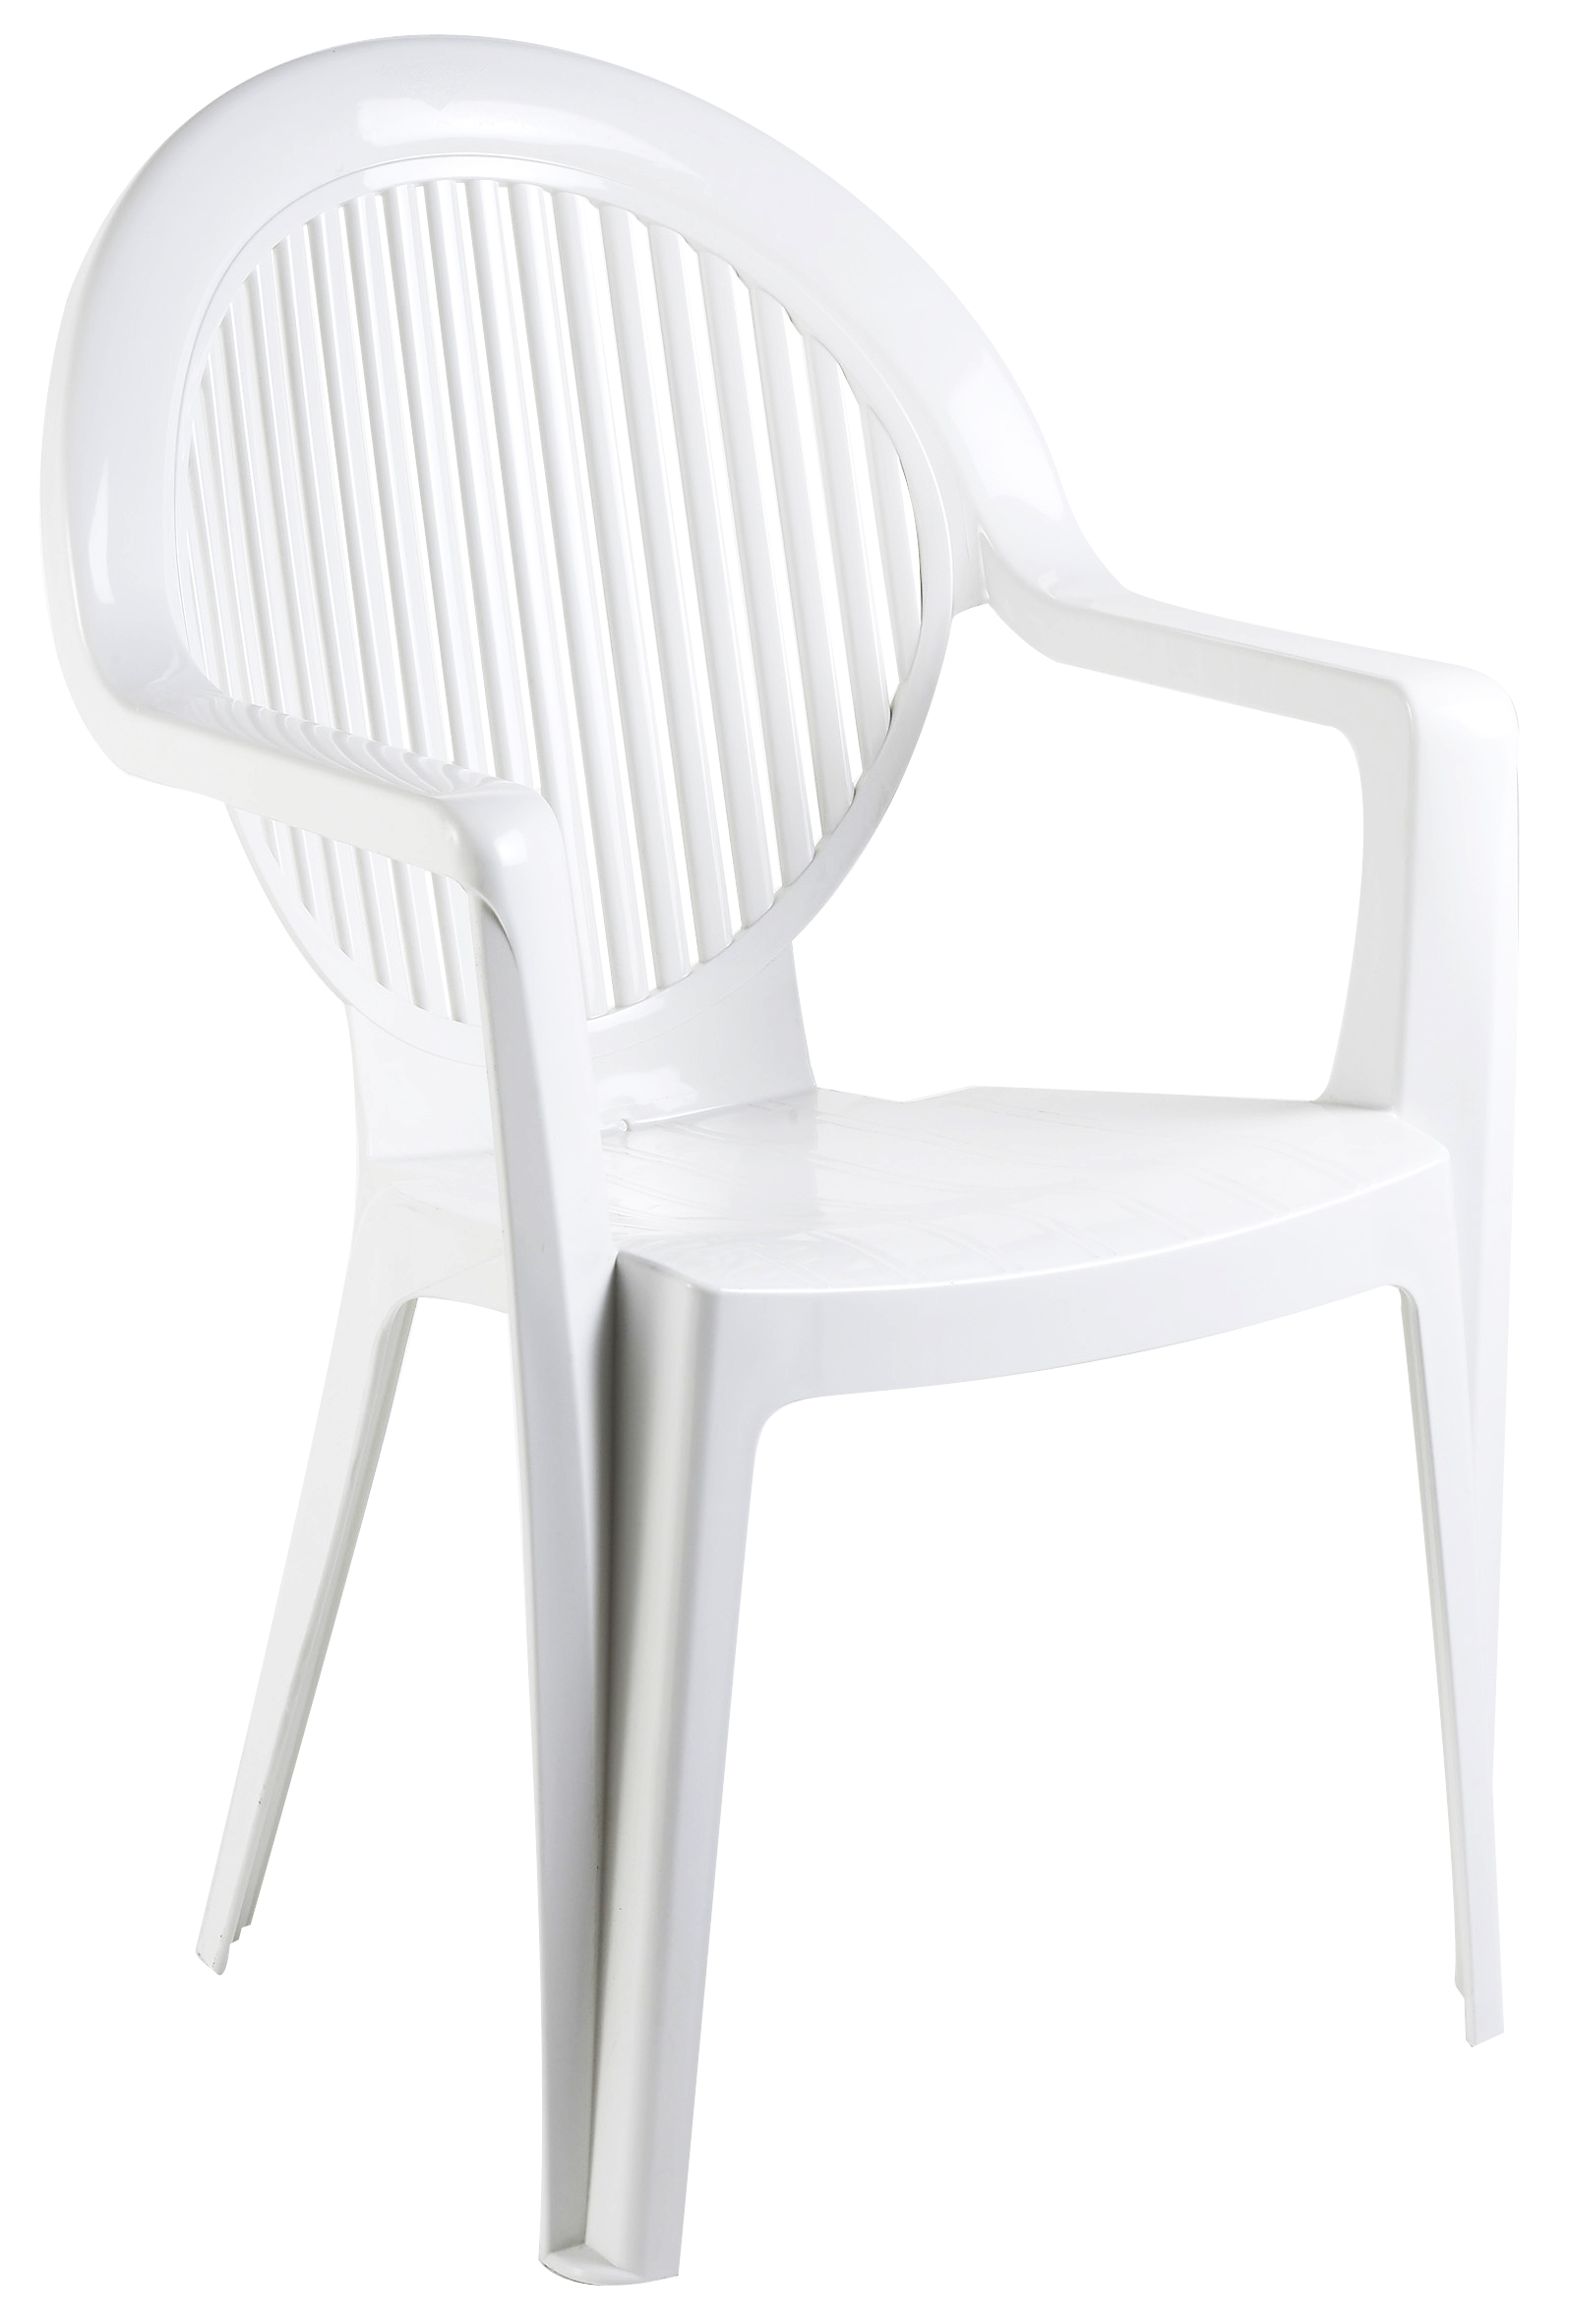 Best Fauteuil Salon De Jardin Grosfillex Images - House Design ...